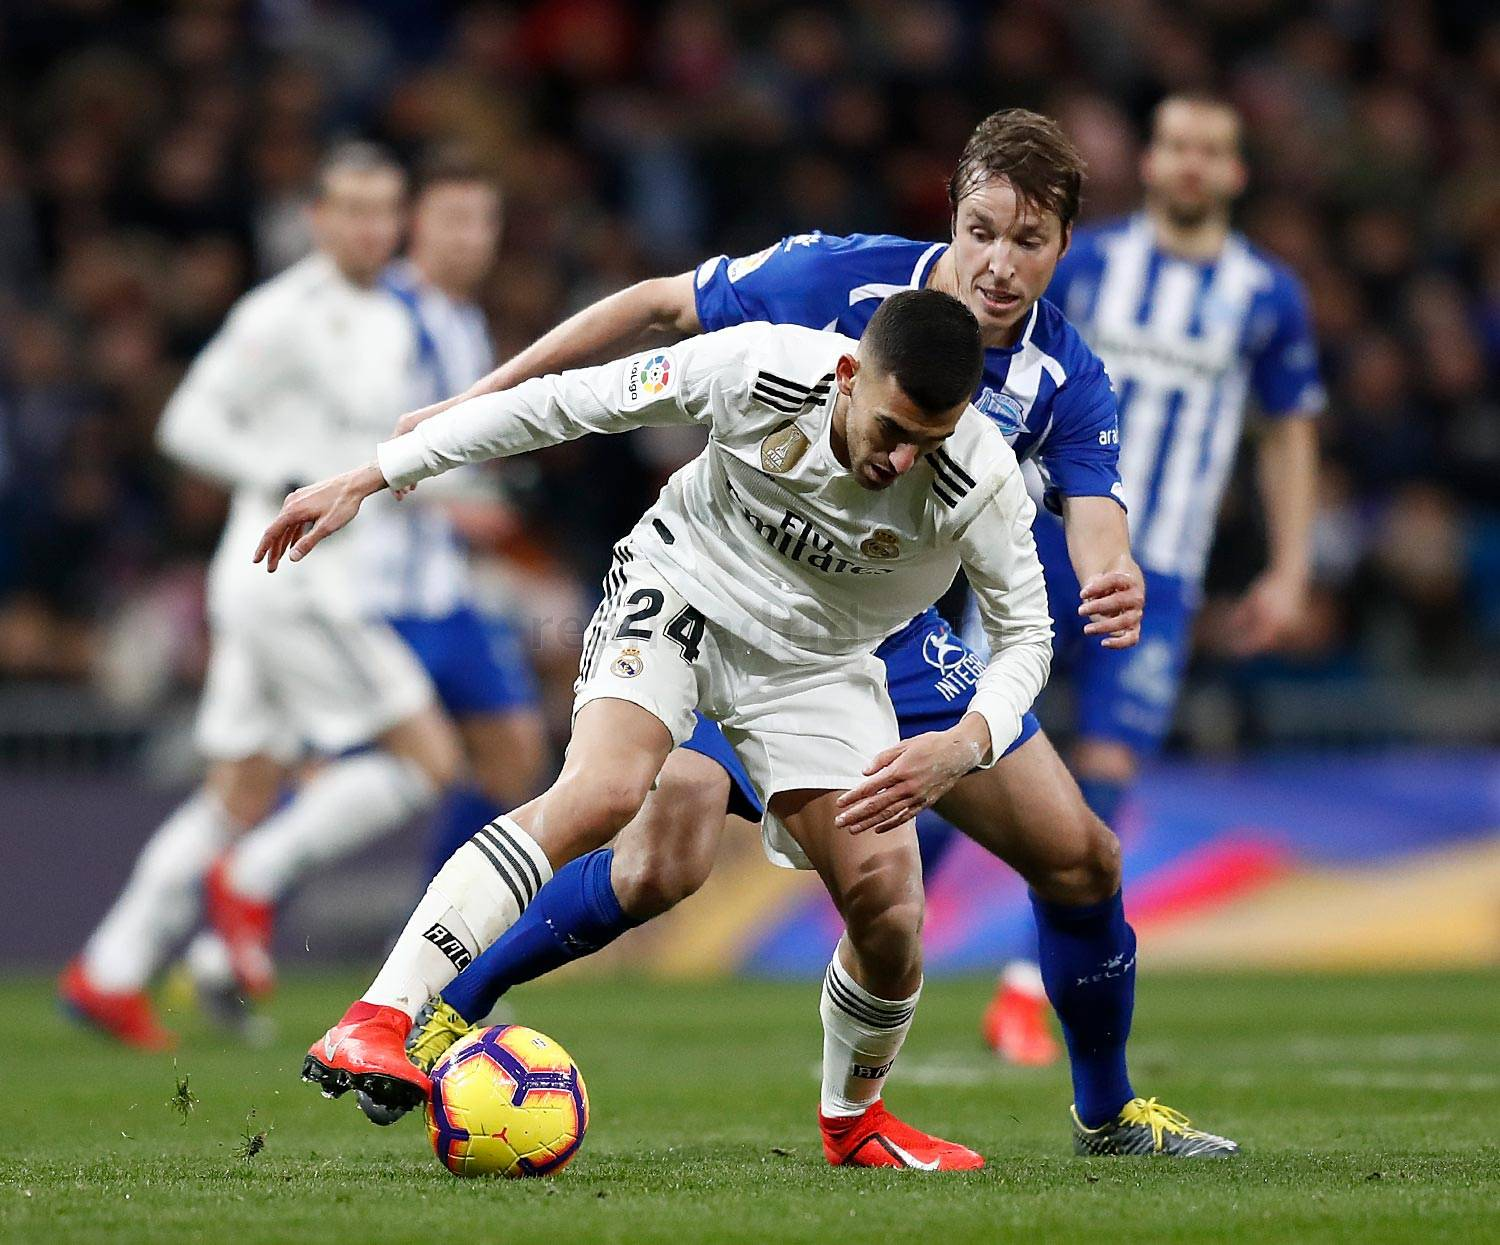 Real Madrid - Real Madrid - Alavés - 03-02-2019